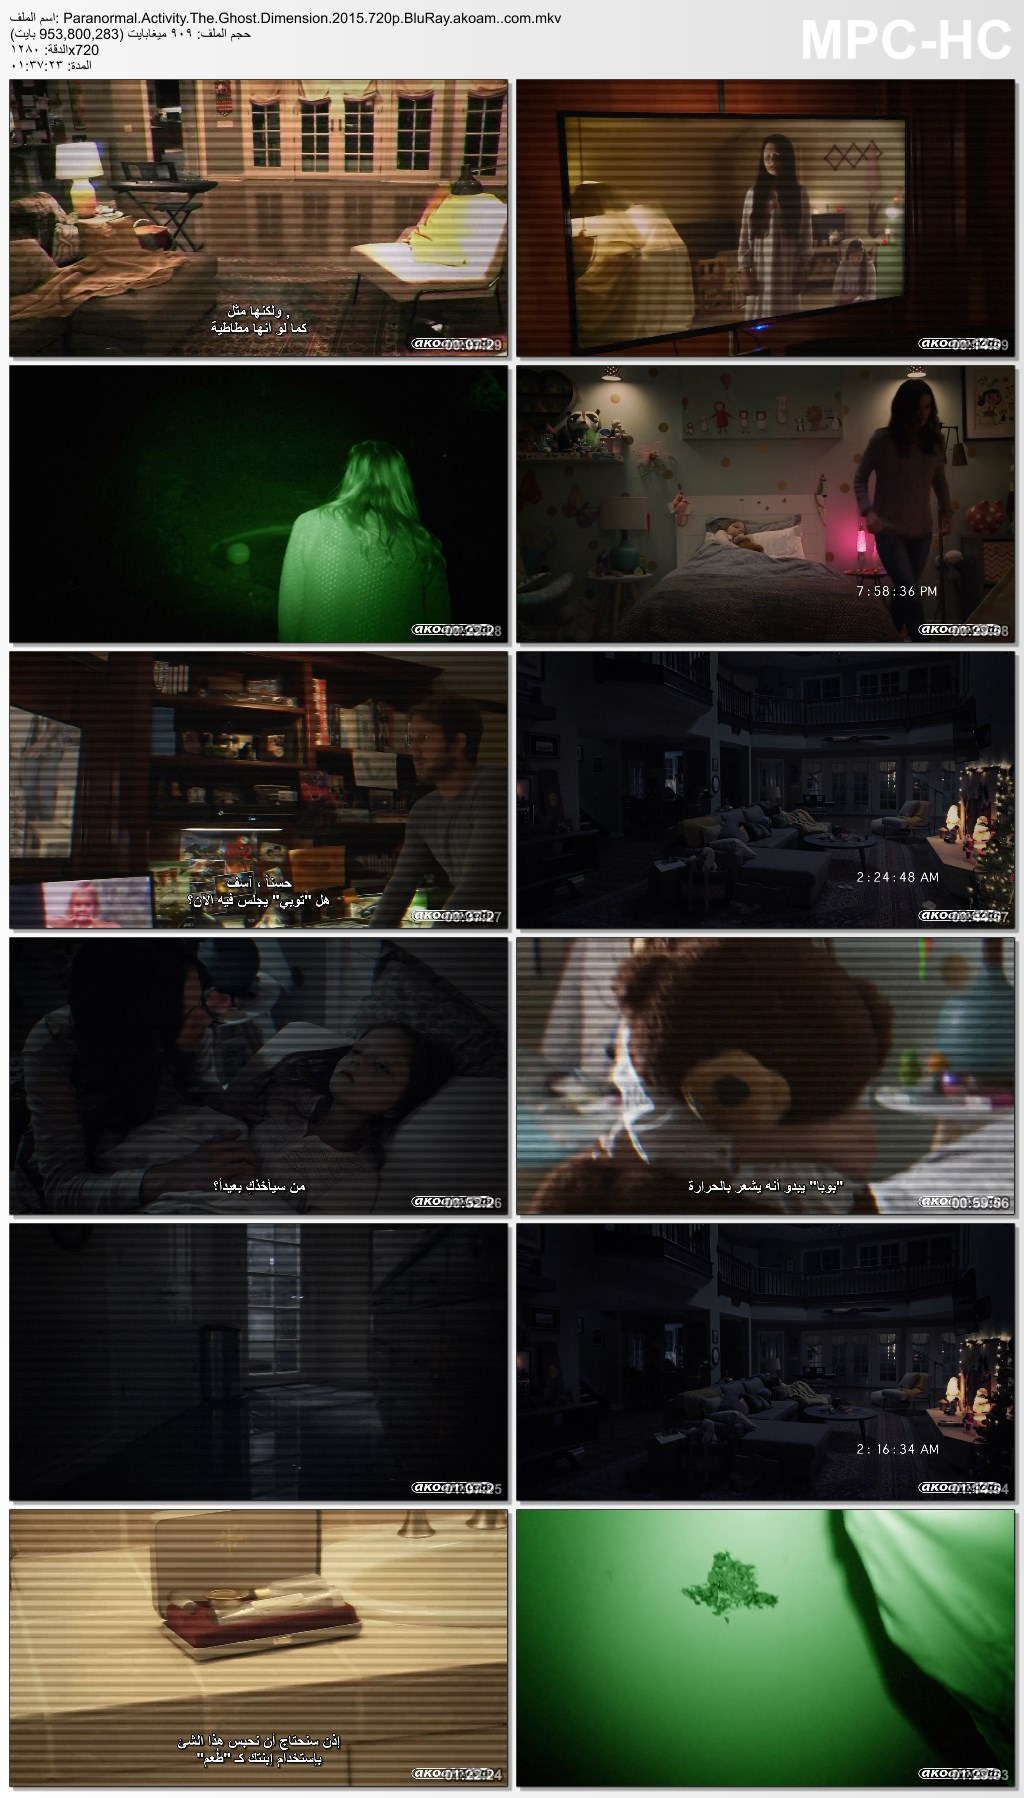 Paranormal Activity: Ghost Dimension,الرعب,Paranormal Activity,نشاط خوارقي